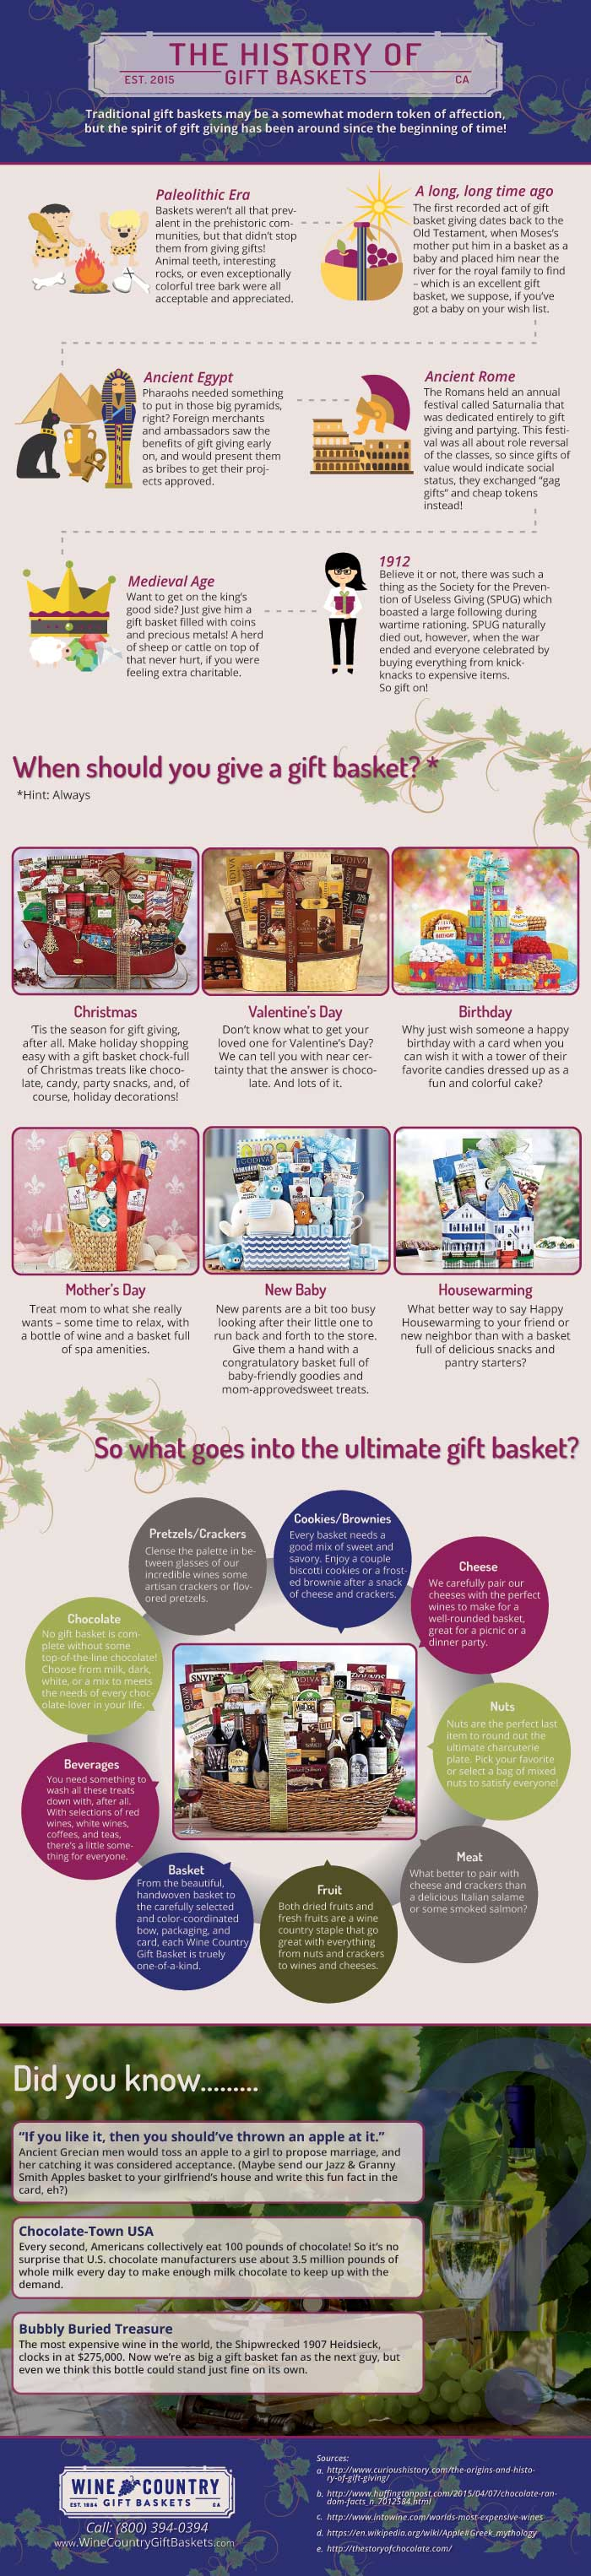 Gift Basket Industry